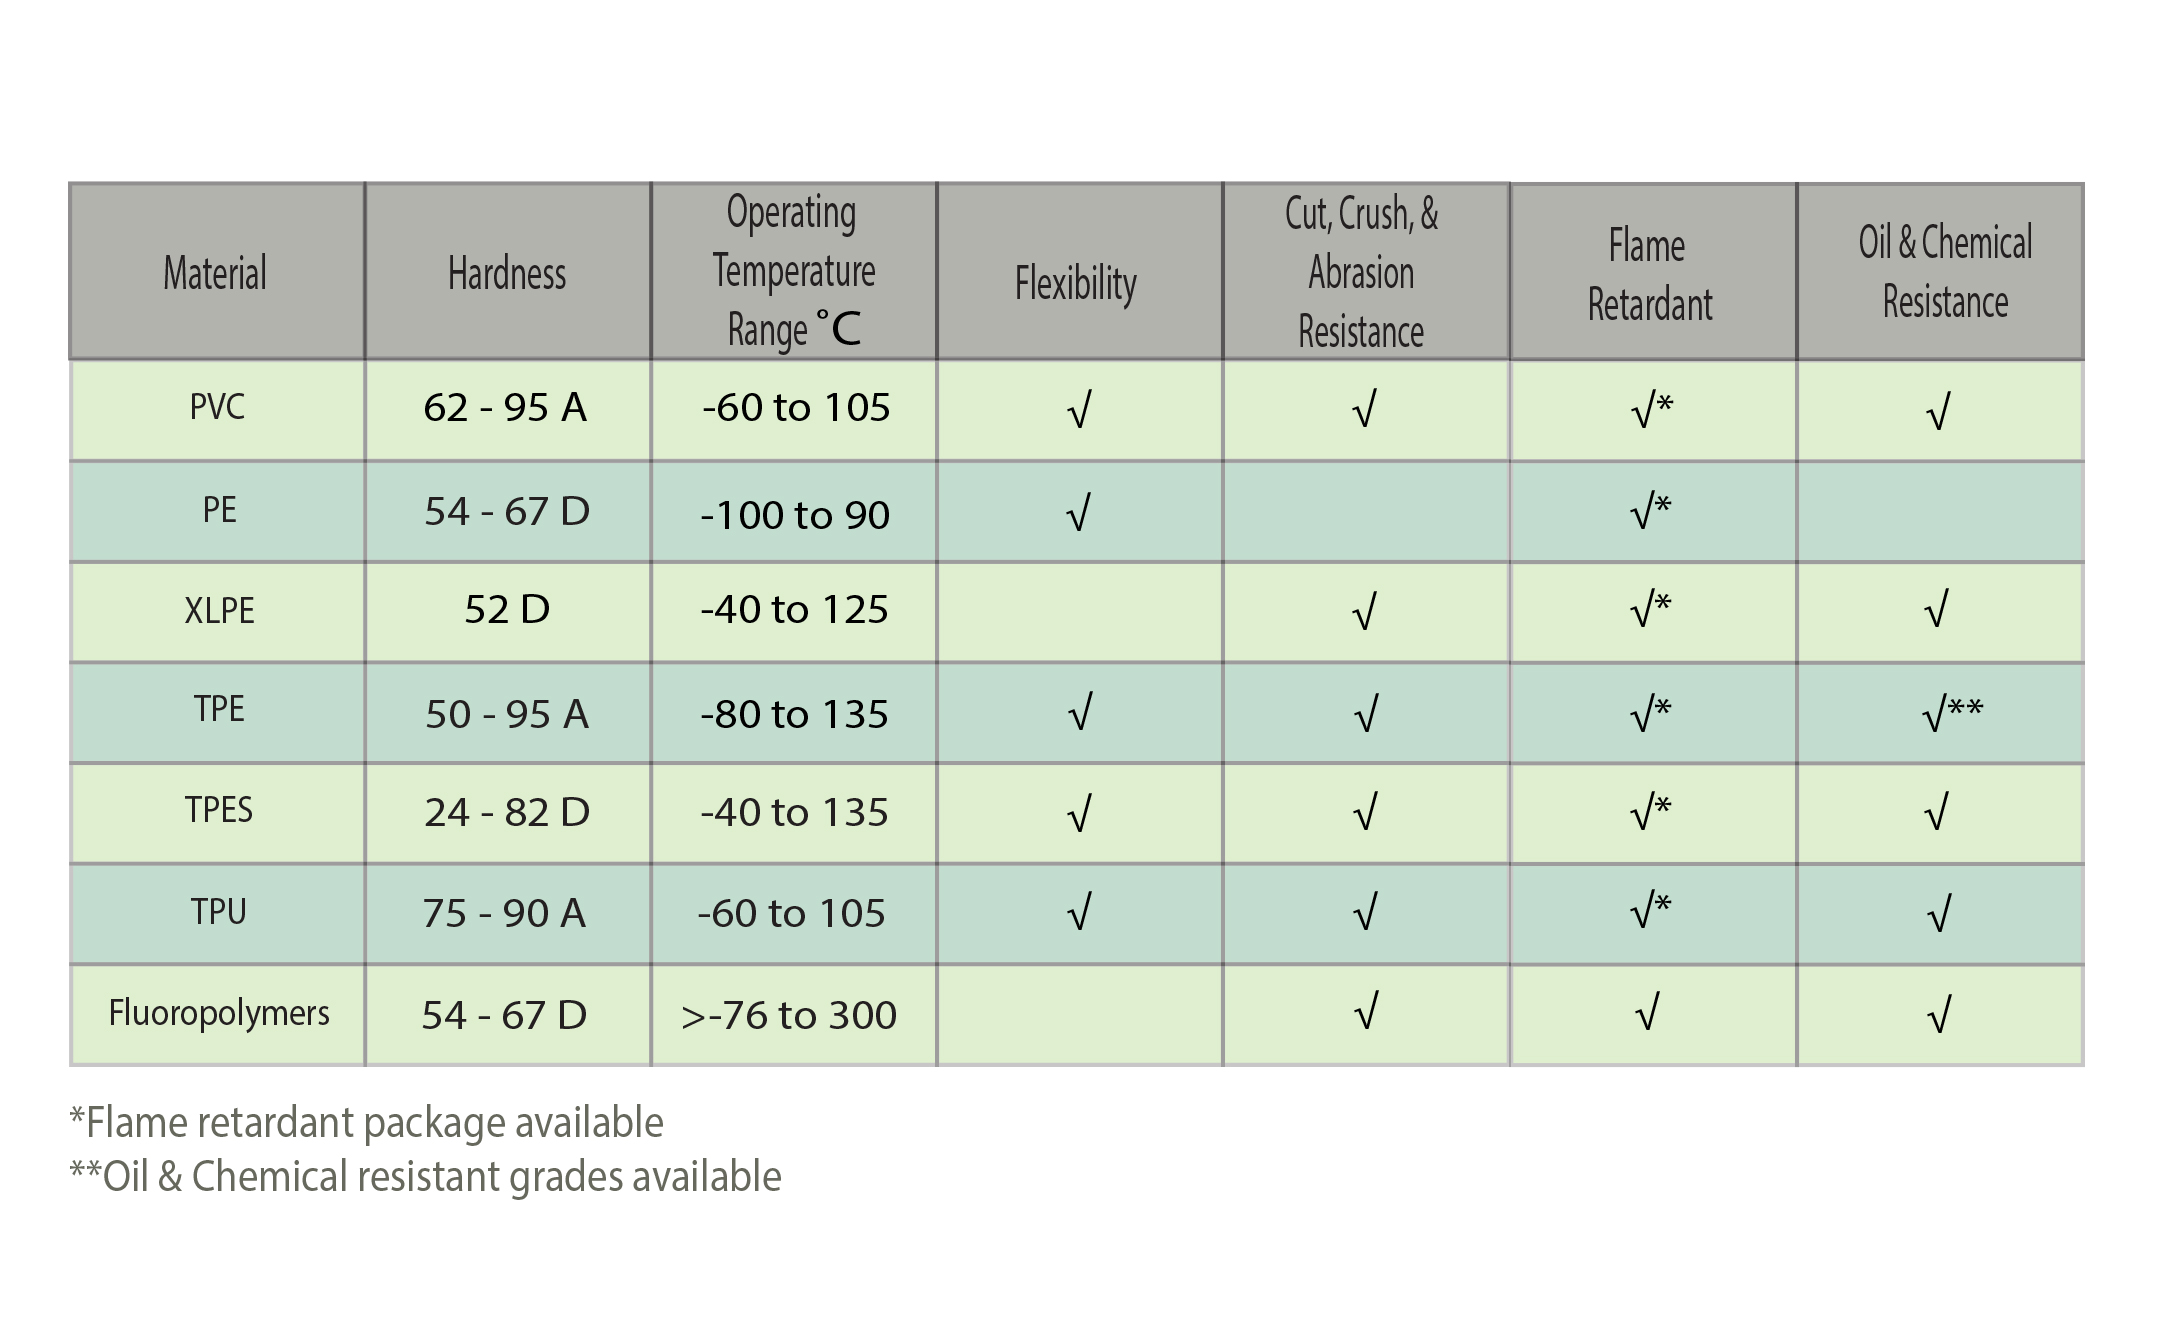 Table showing jacket material benefit comparison